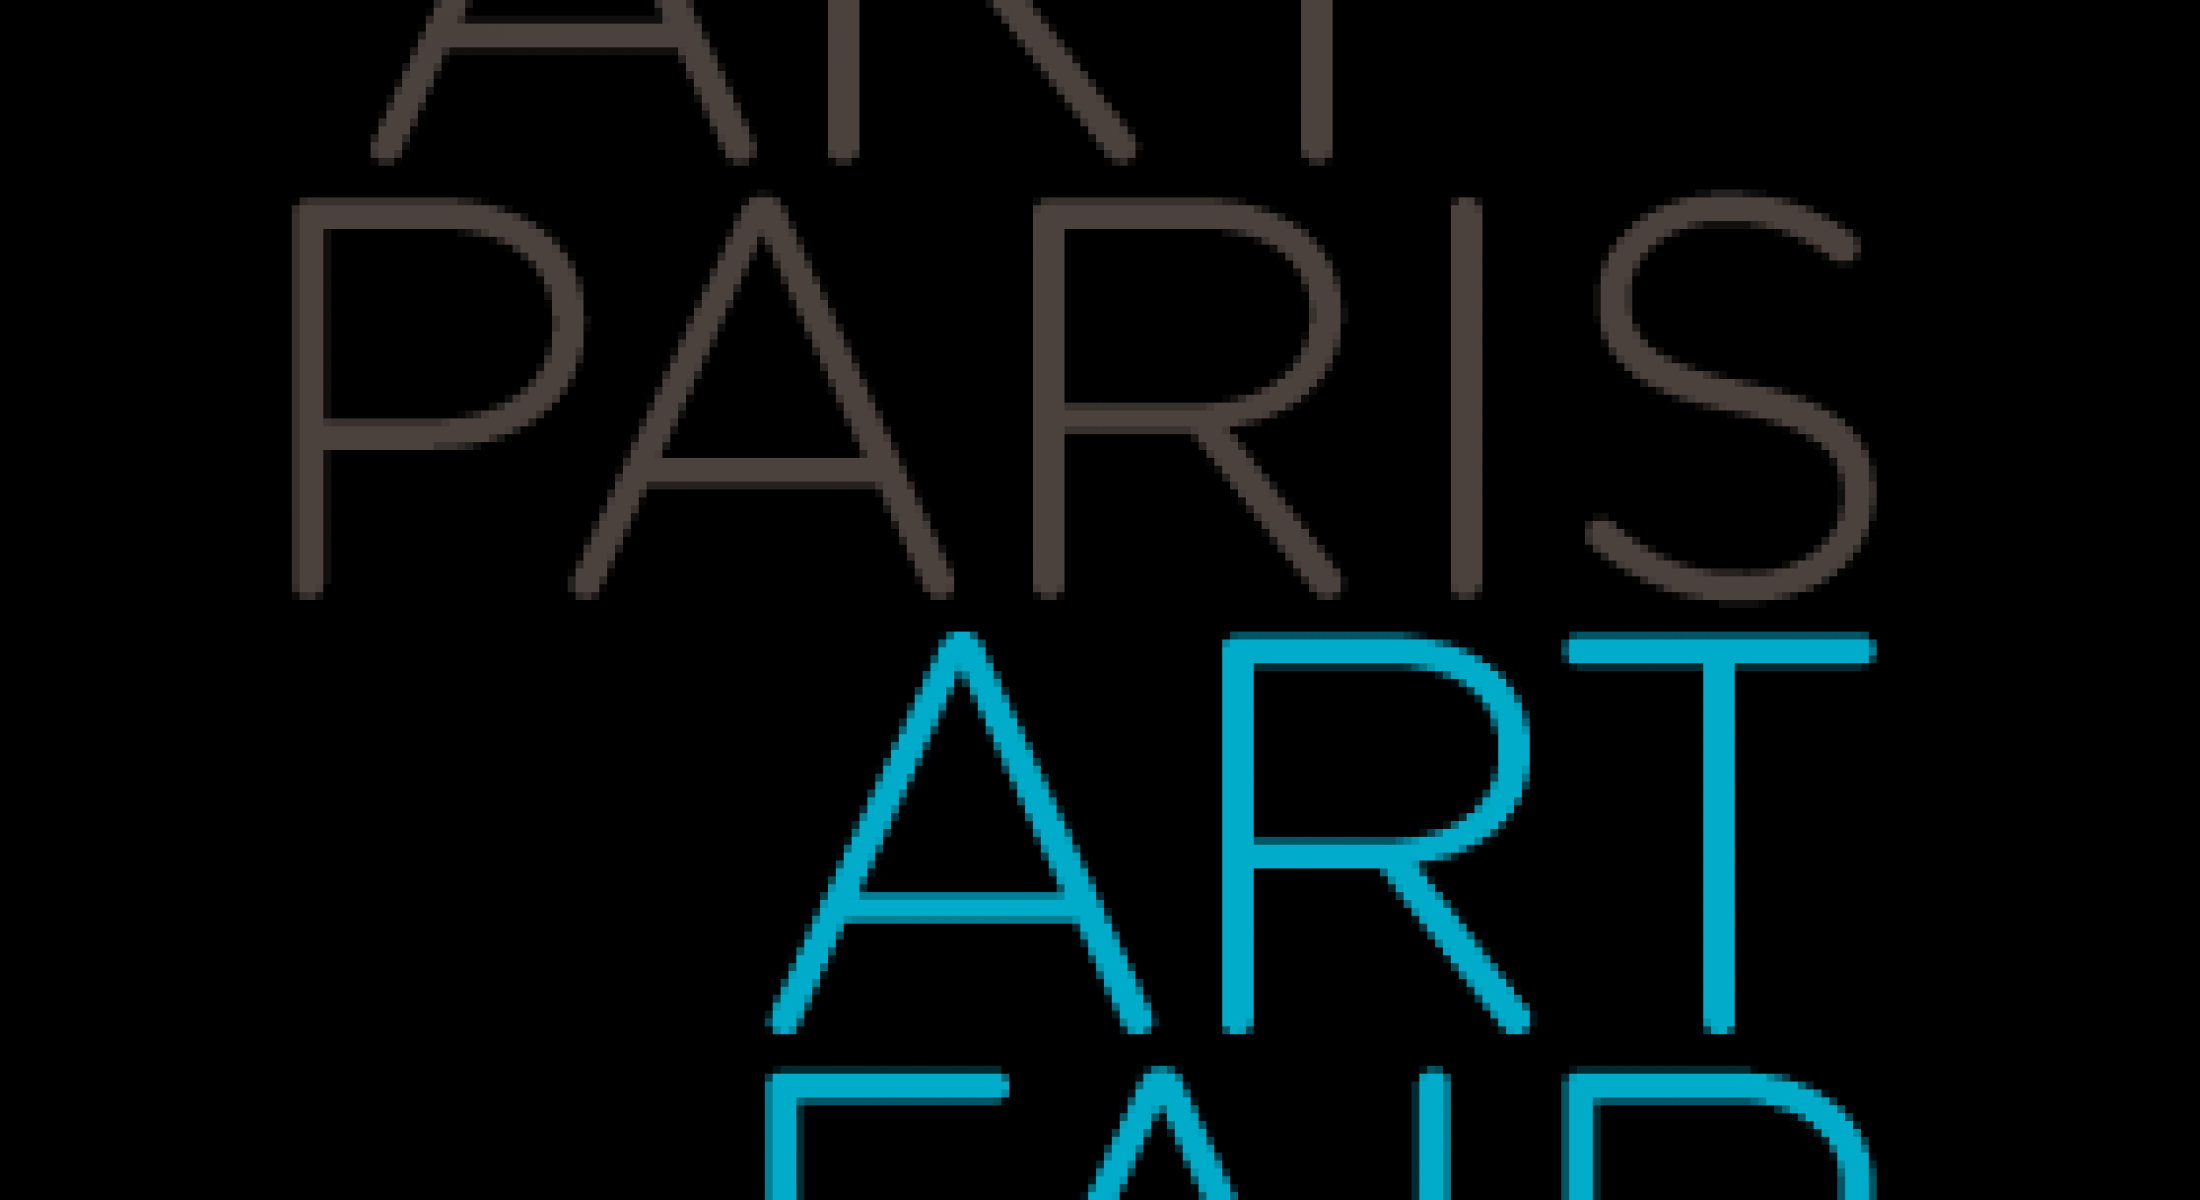 20 years - Art Paris Art Fair logo, 2018